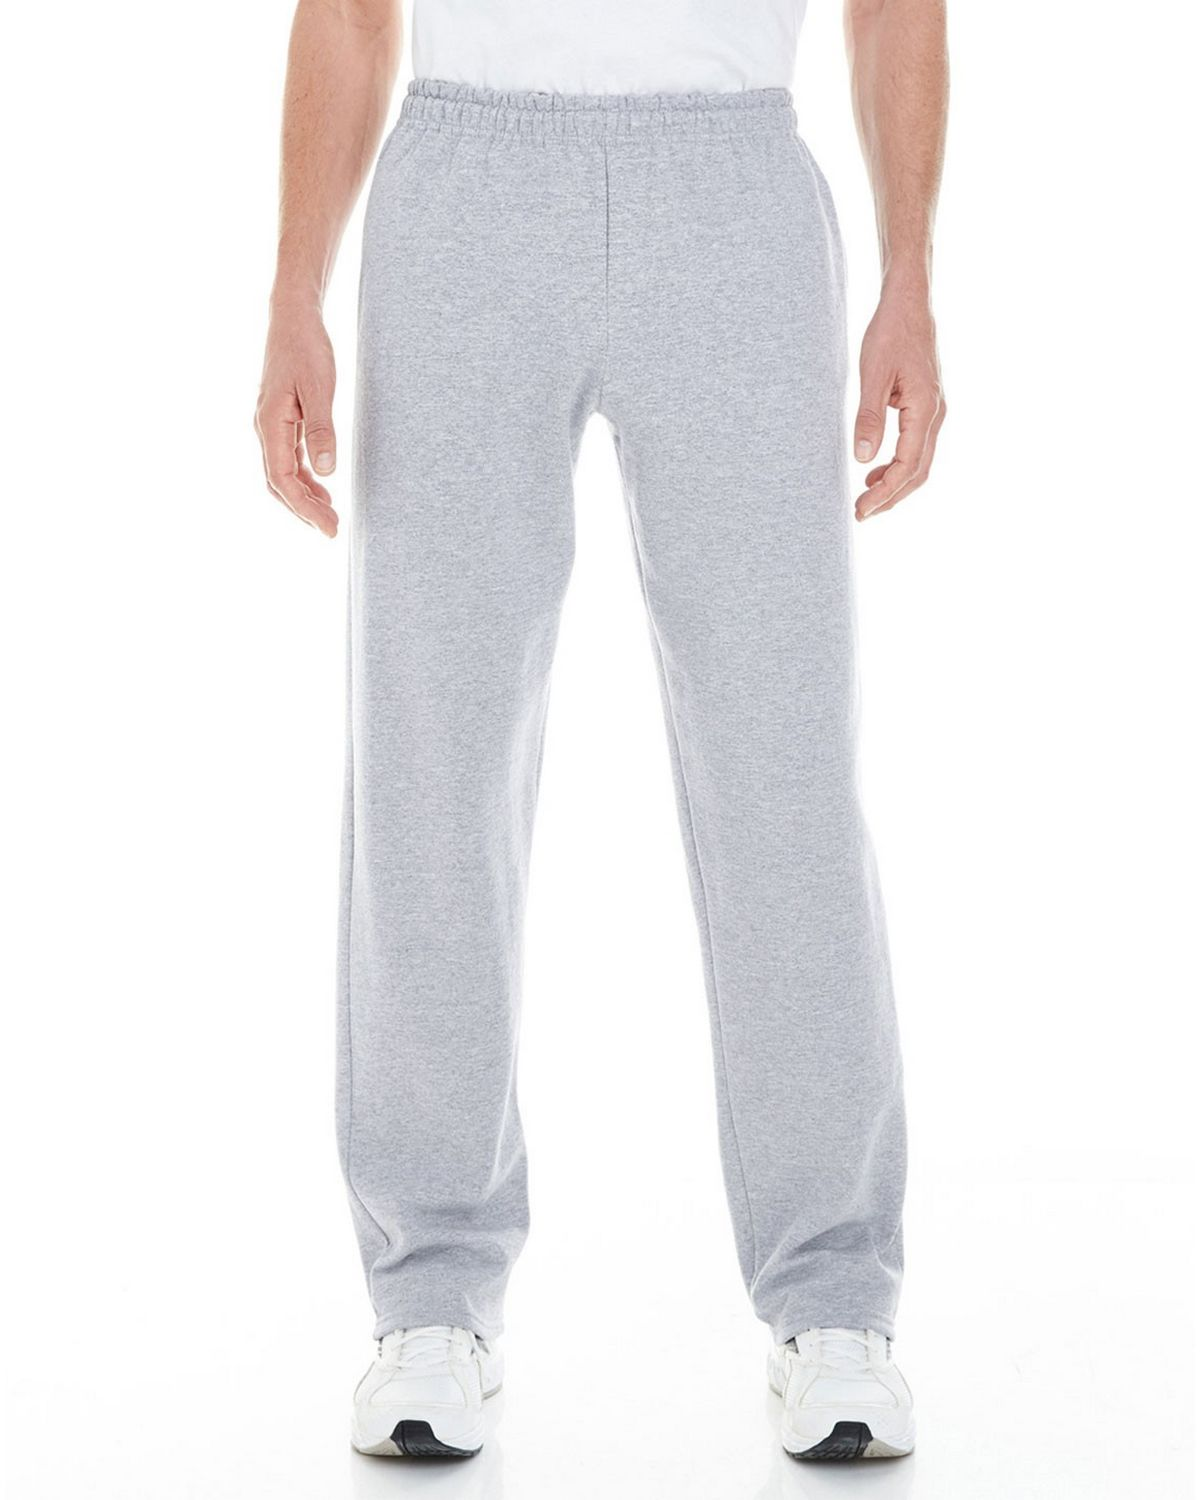 Gildan G18300 Heavy Blend Adult Sweatpants - Sport Grey - 5X G18300